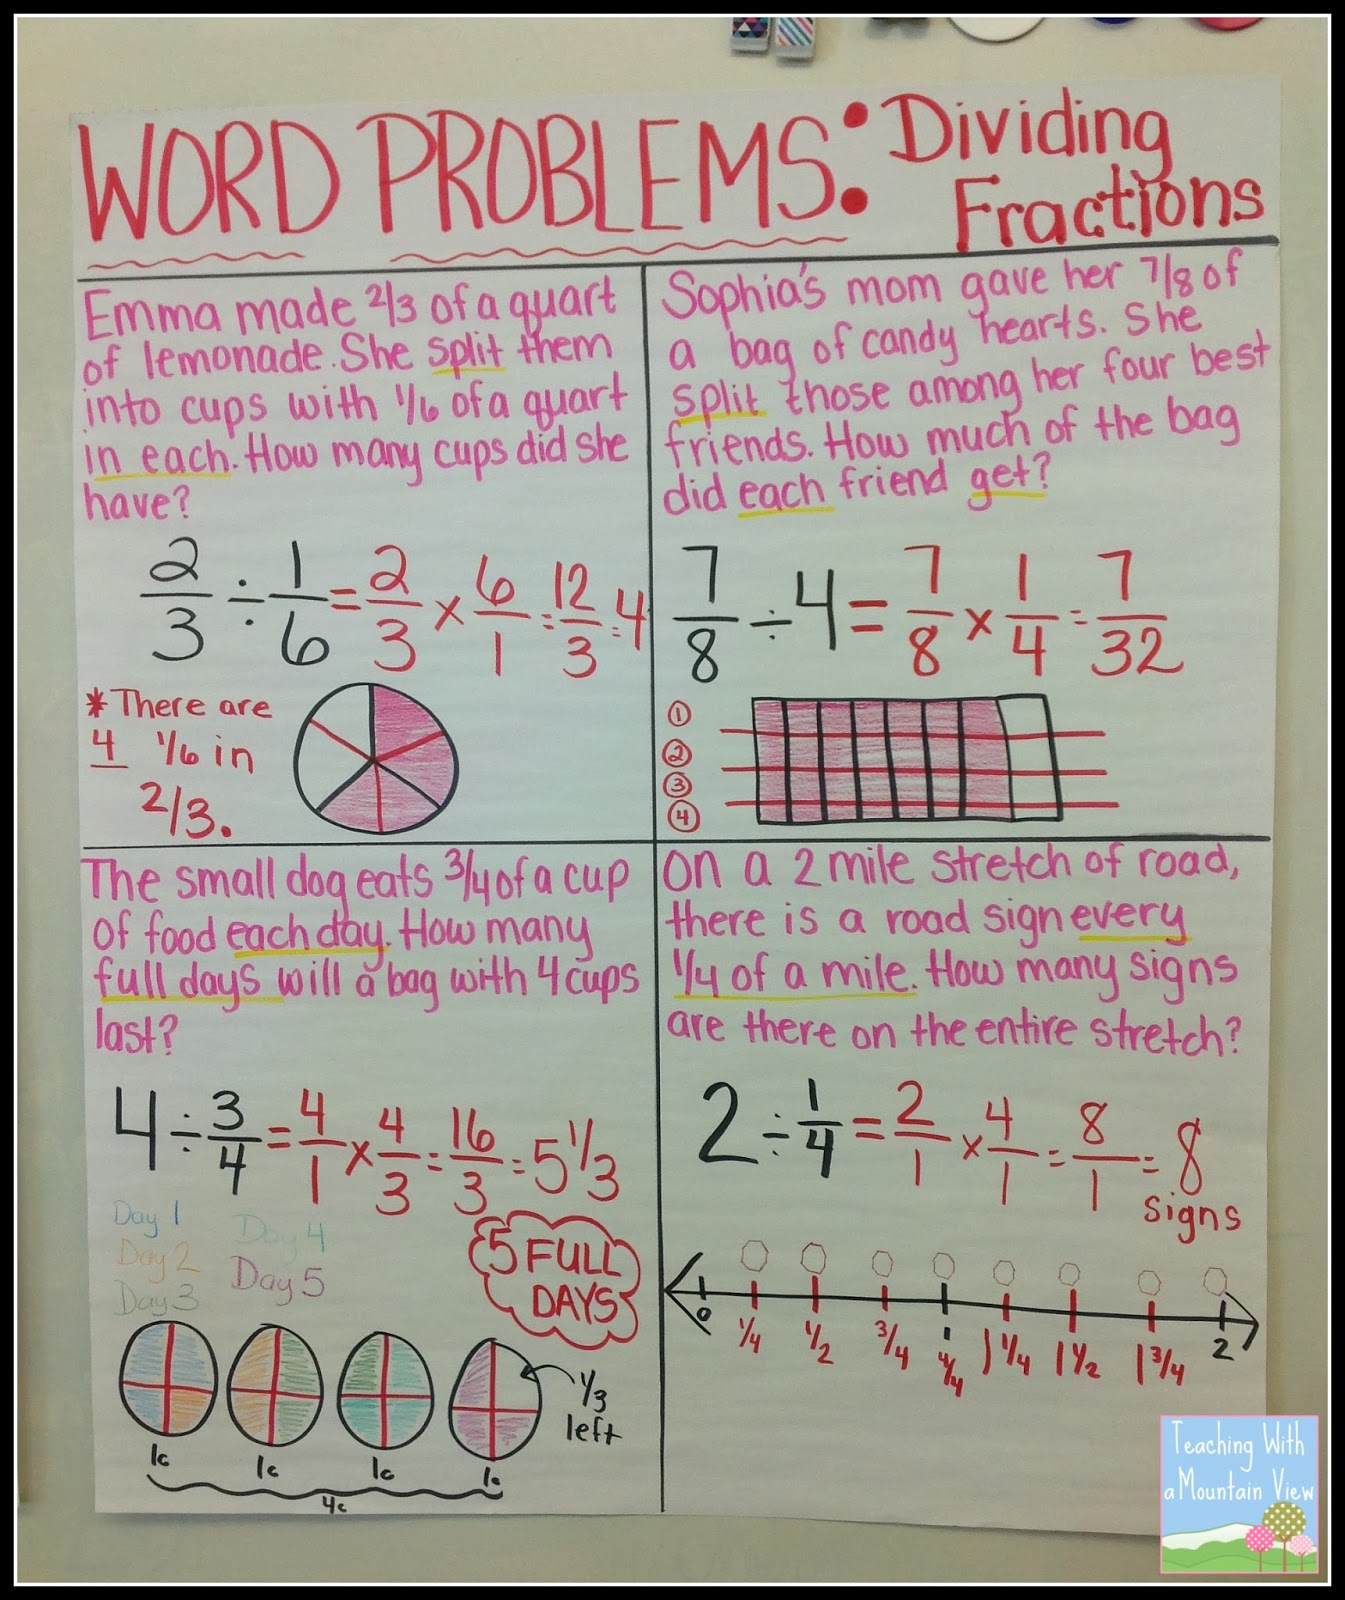 Worksheet Multiply Fractions Word Problems teaching with a mountain view making sense of multiplying we dissected these word problems underlined key phrases that they felt helped them to know what type problem were reading and